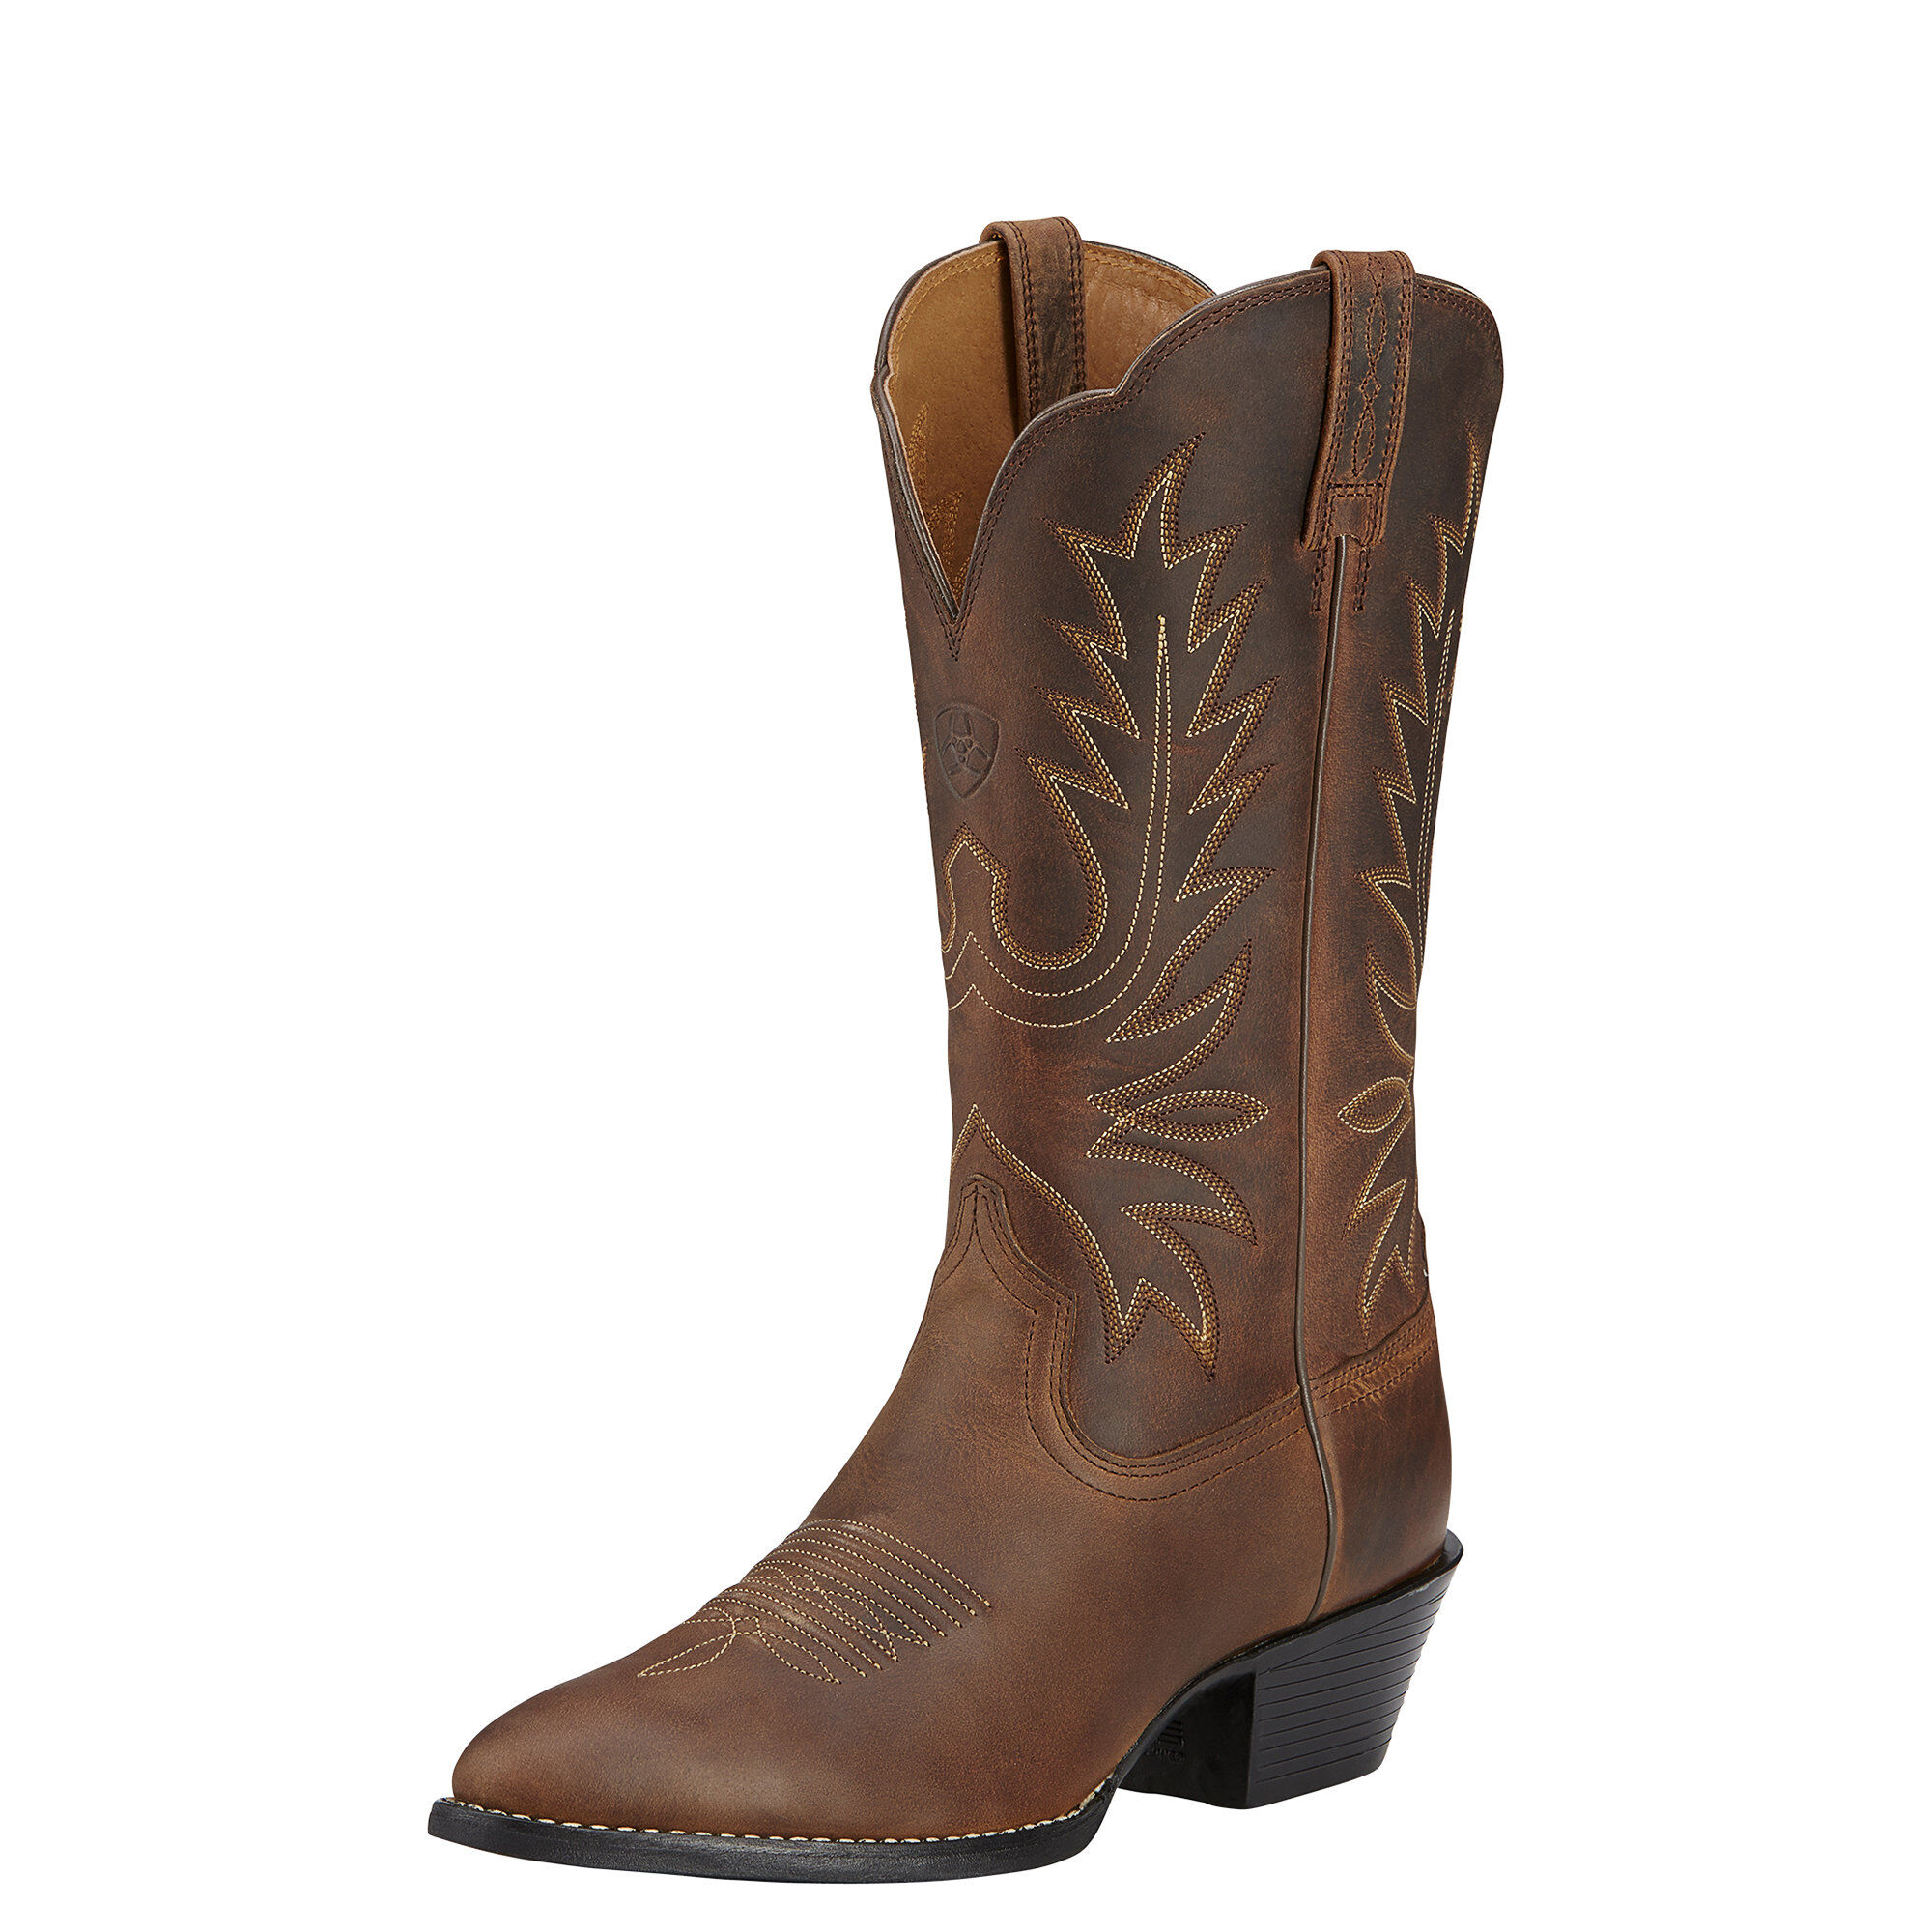 Women's Heritage R Toe Western Boots in Distressed Brown by Ariat